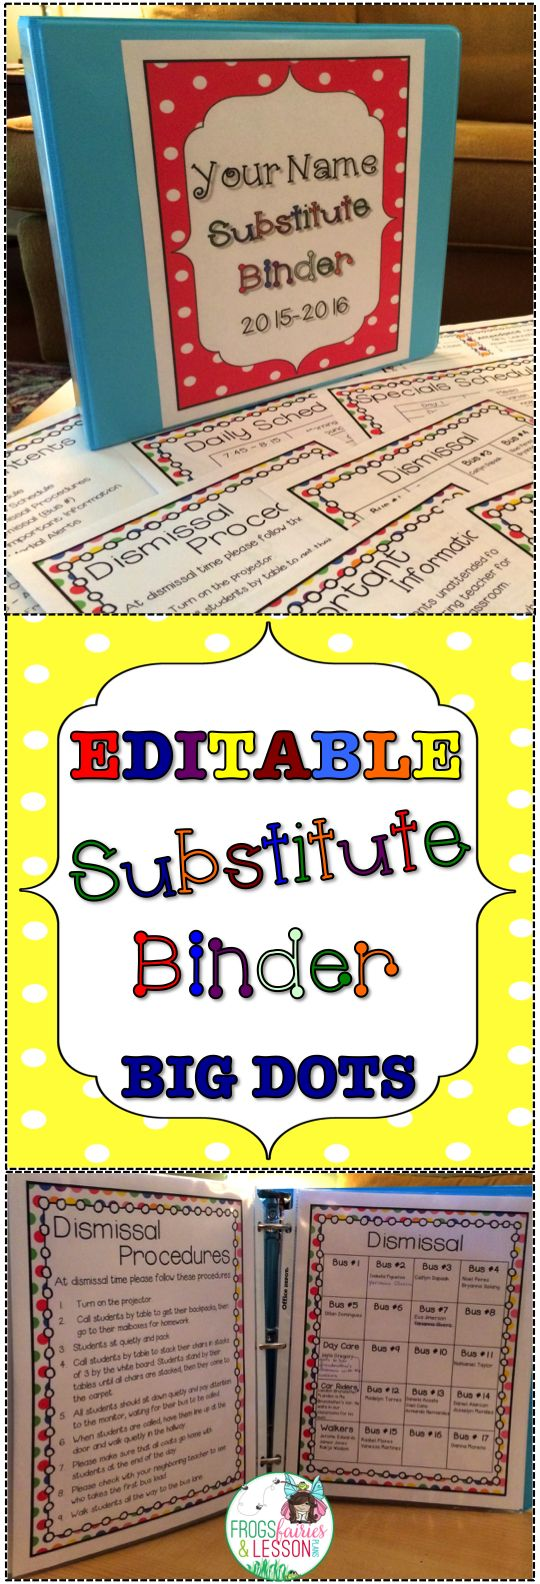 EDITABLE substitute binder! Cover choices and templates that will make it easy for you to take a sick day when you need one! Just click and edit each page for a professional looking and effective Substitute Binder! Big Dots theme